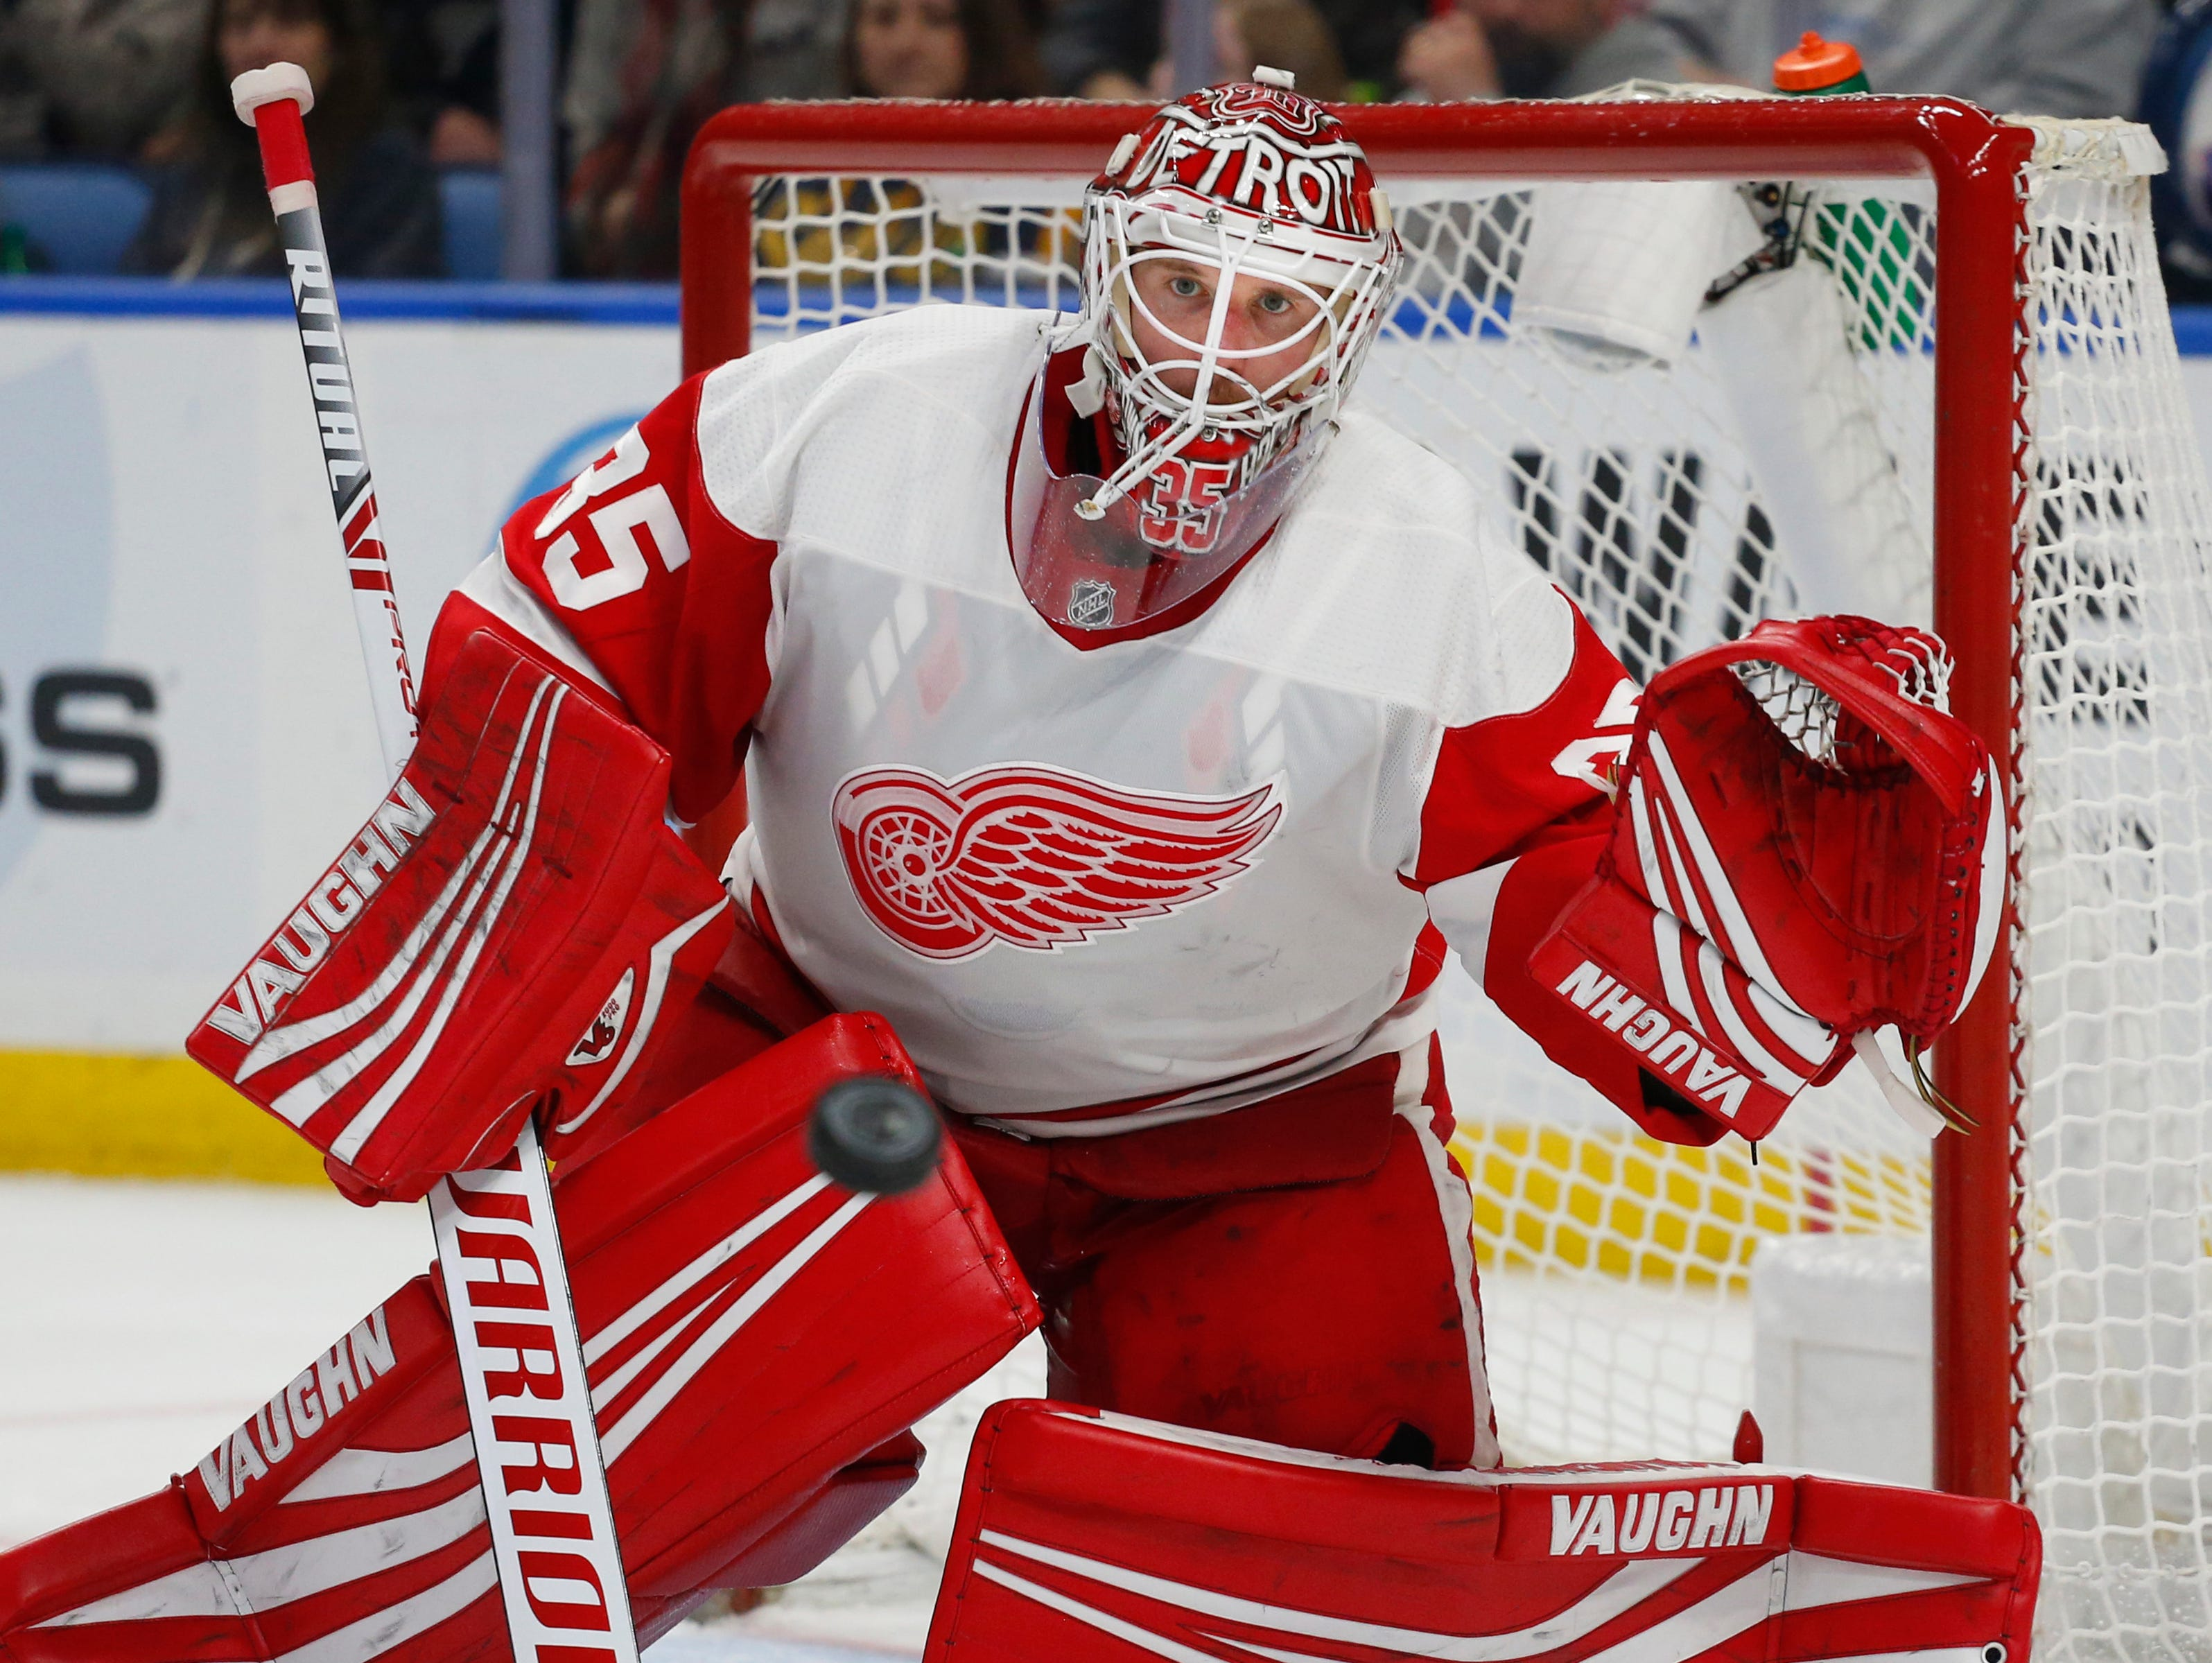 Red Wings goalie Jimmy Howard watches the puck during the third period of the Wings' 3-1 loss on Saturday, Feb. 9, 2019, in Buffalo N.Y.